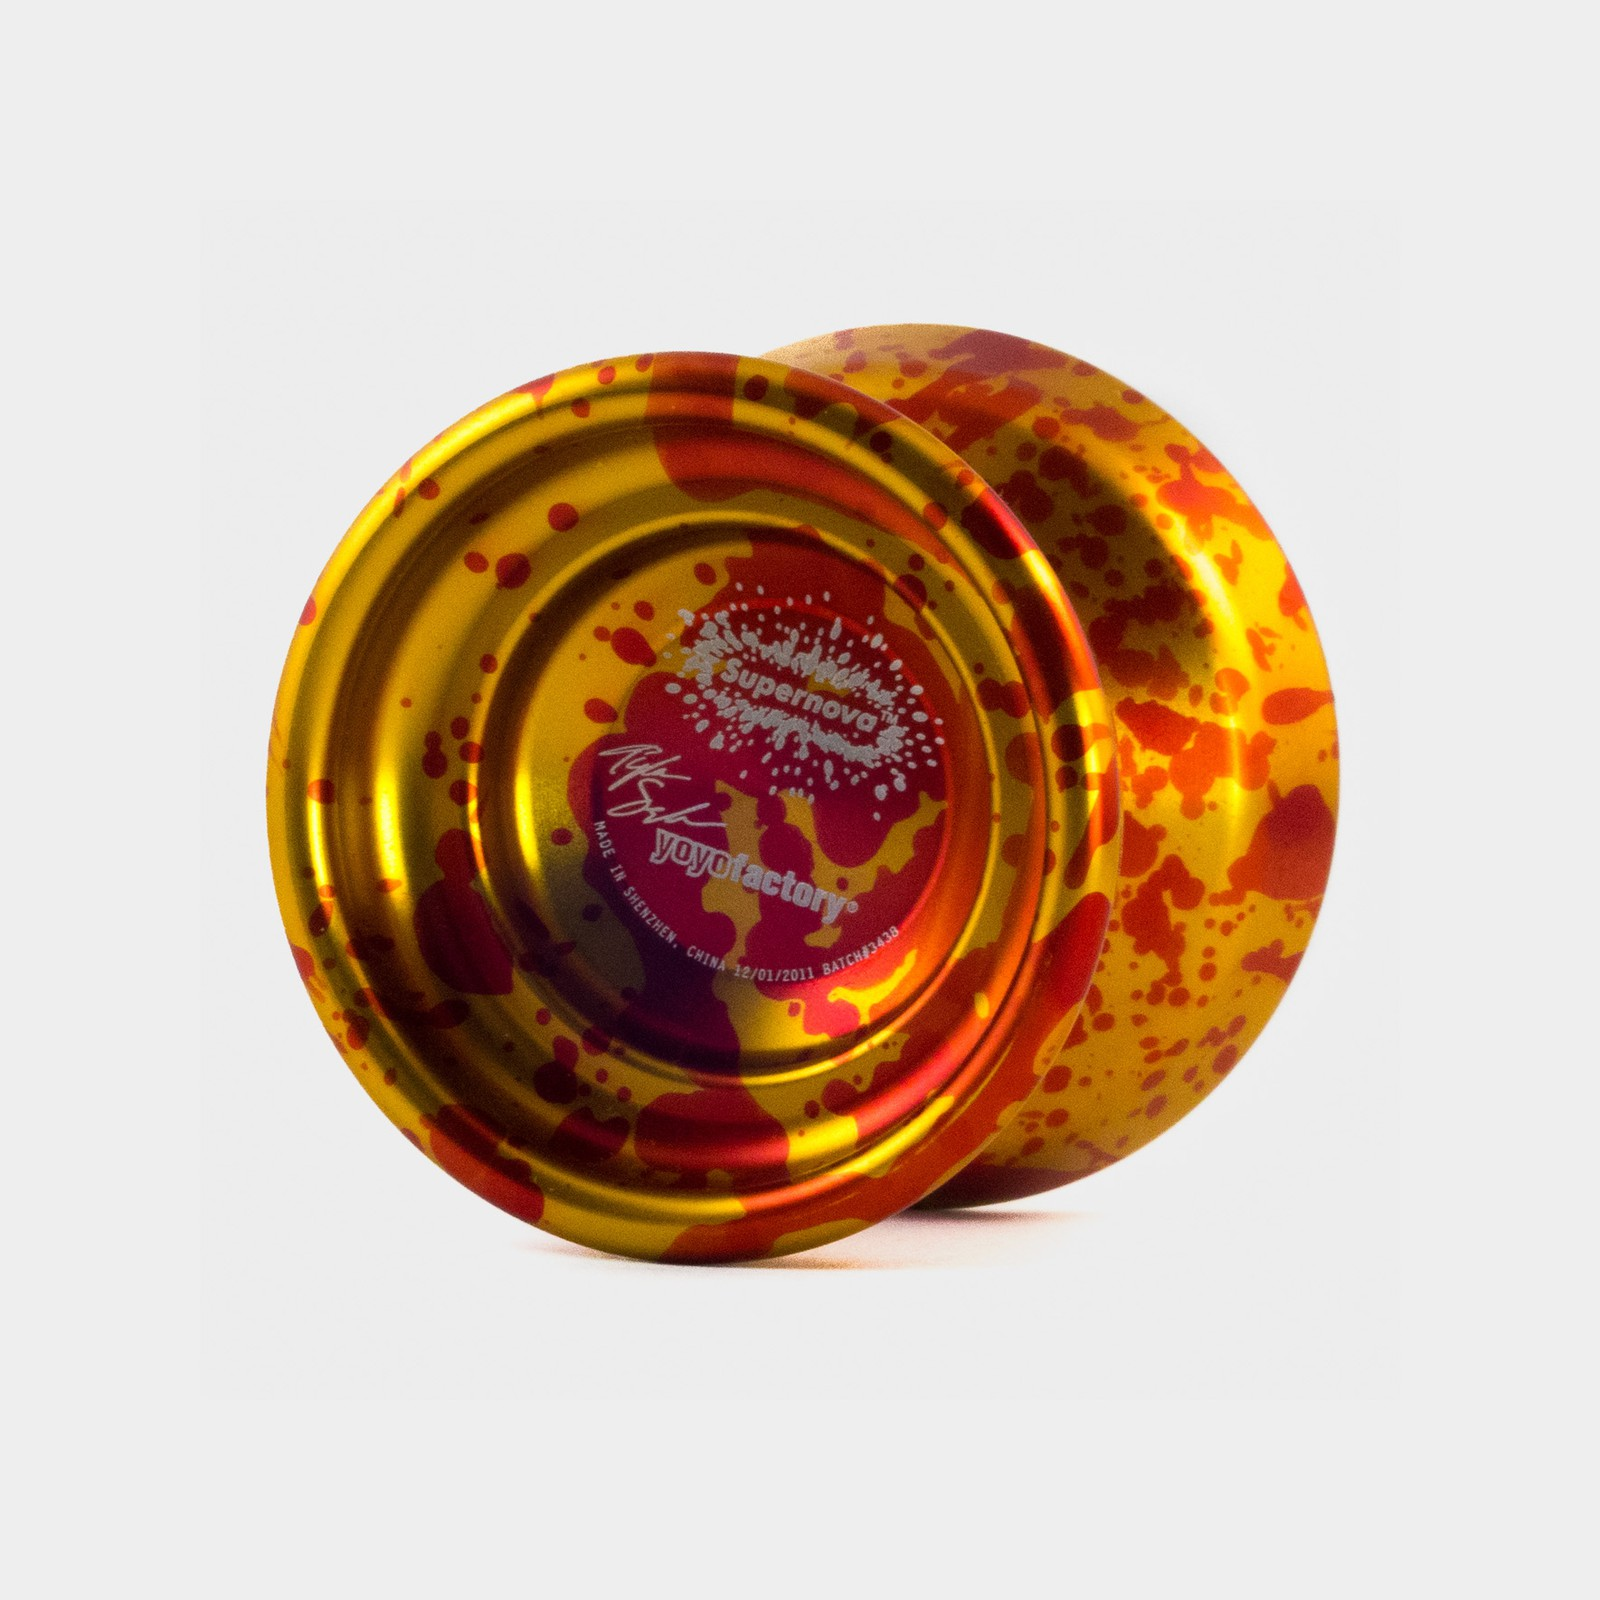 Supernova (Old) yo-yo in Gold / Red Splash by YoYoFactory